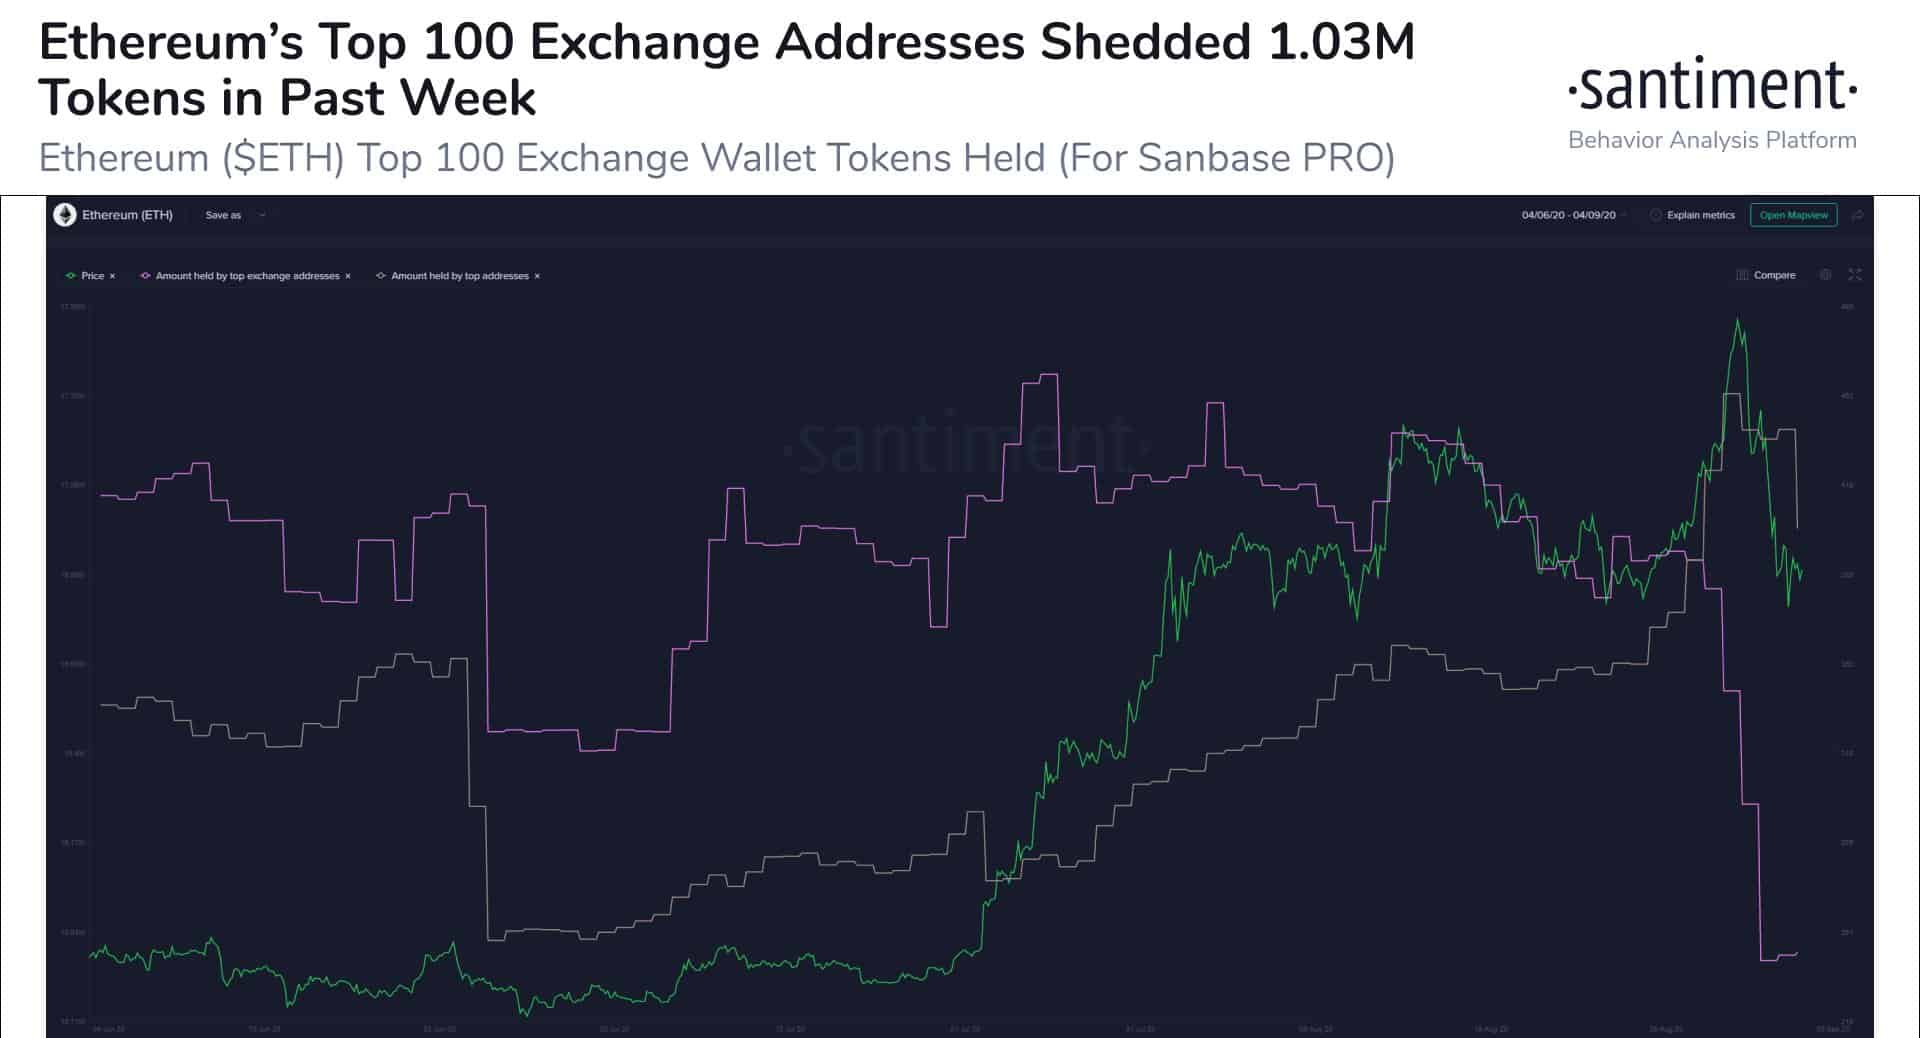 ETH Exchange Addresses Sell-Off ETH Tokens Ahead of Price Dump. Source: Santiment